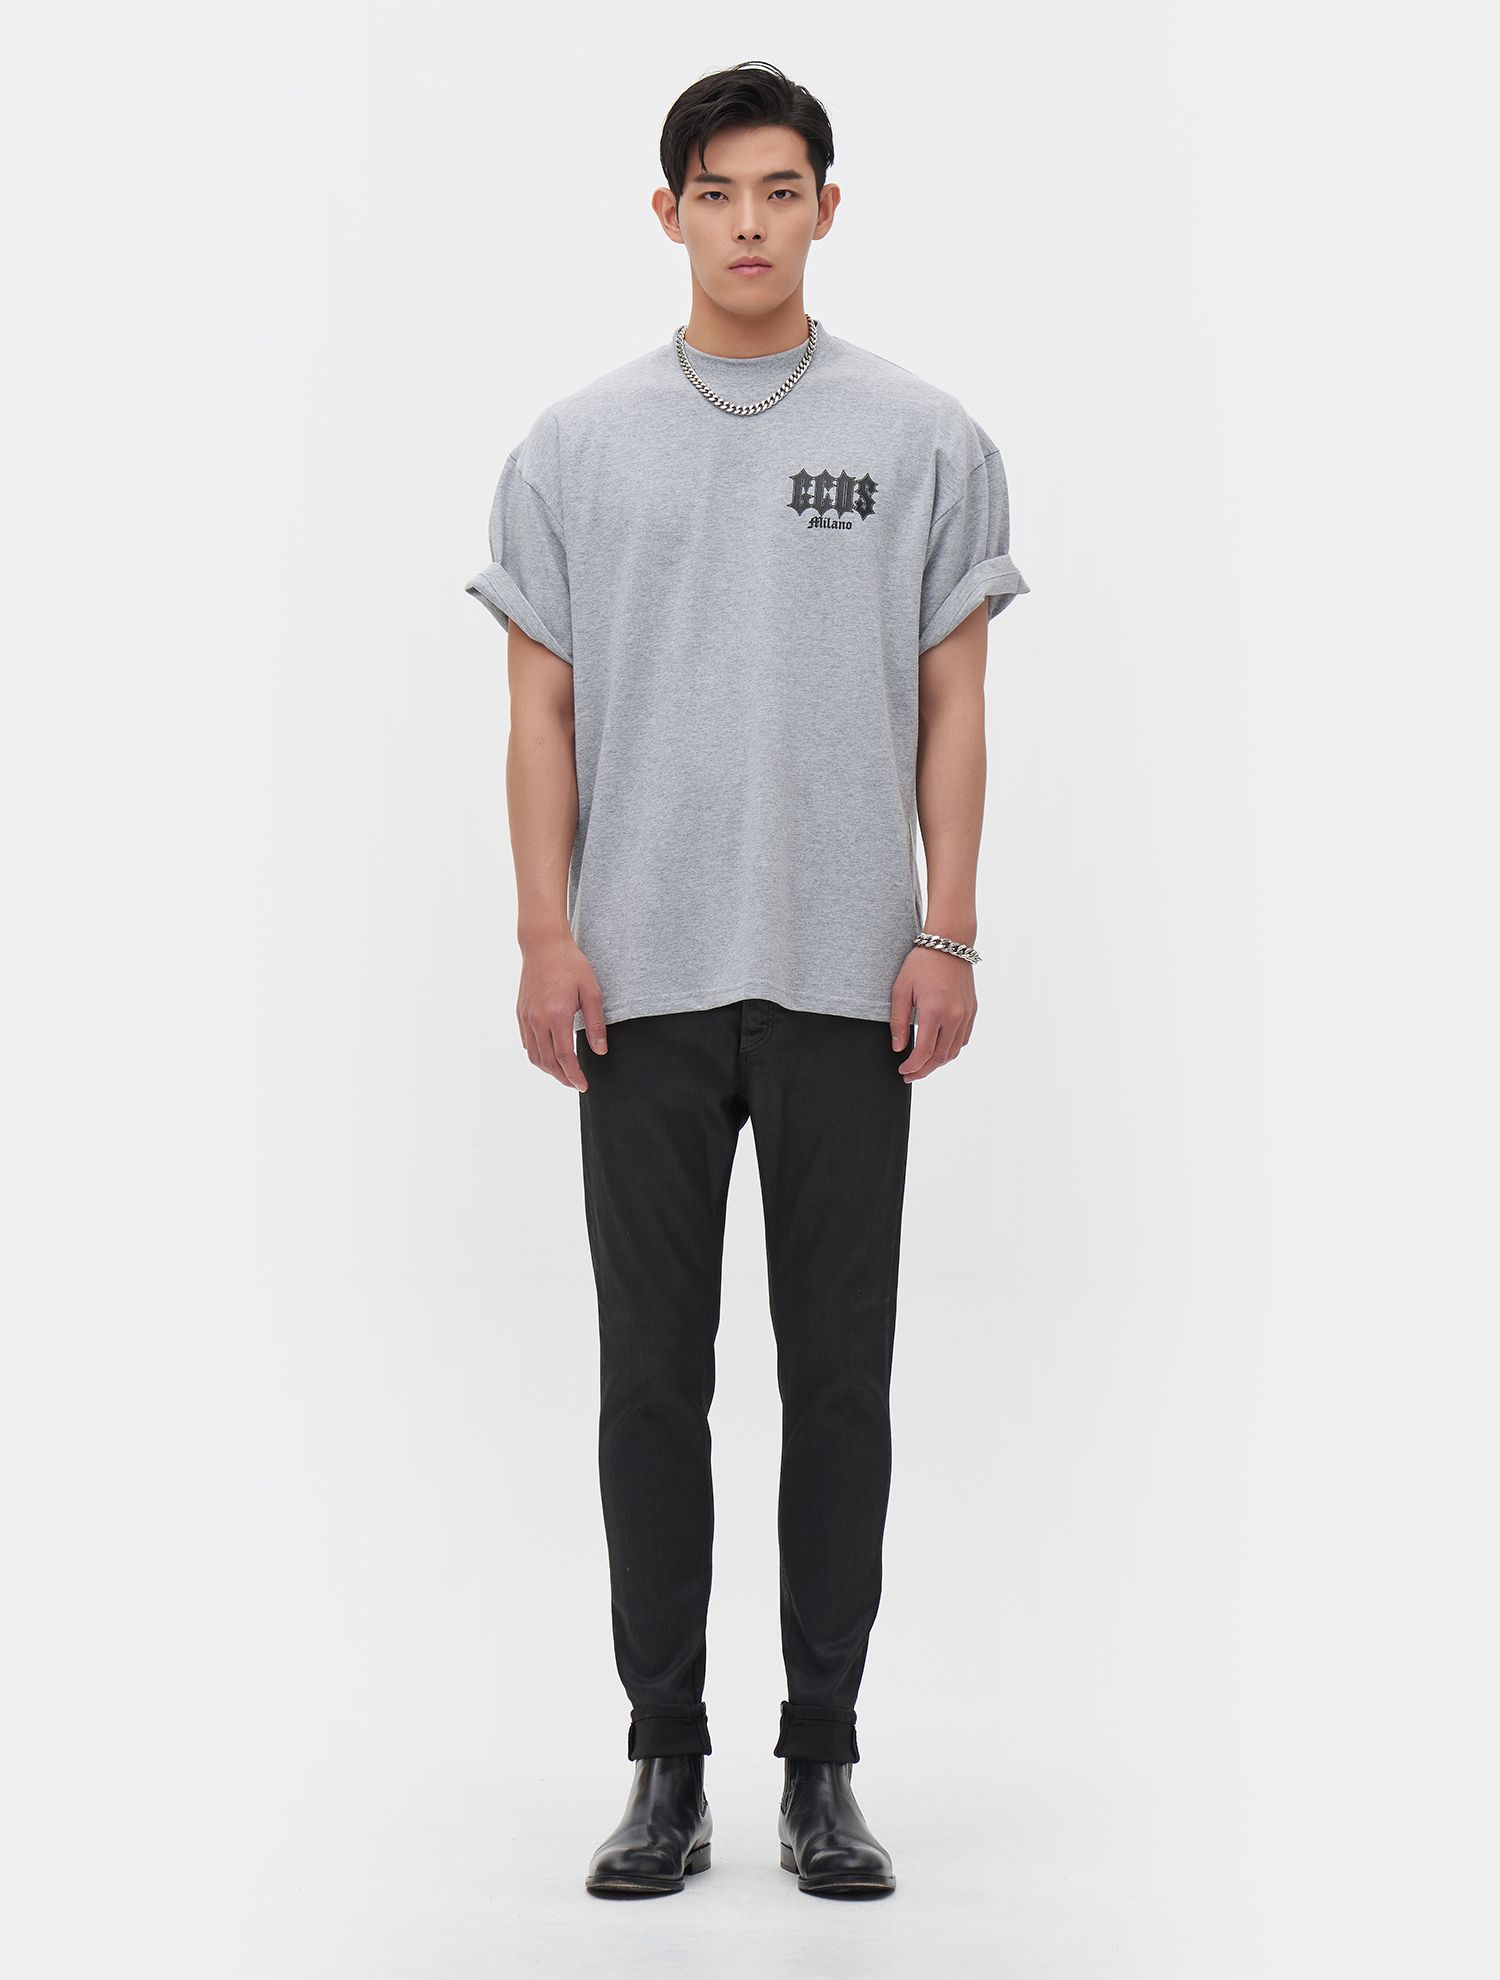 [GCDS] God Tour Short Sleeved T-Shirt (Men). This is a graphic t-shirt of street wear brand which has GCDS's unique printing and attractive embroidery details. This designed t-shirt emphasized GCDS's unique graphic artwork on the backside.